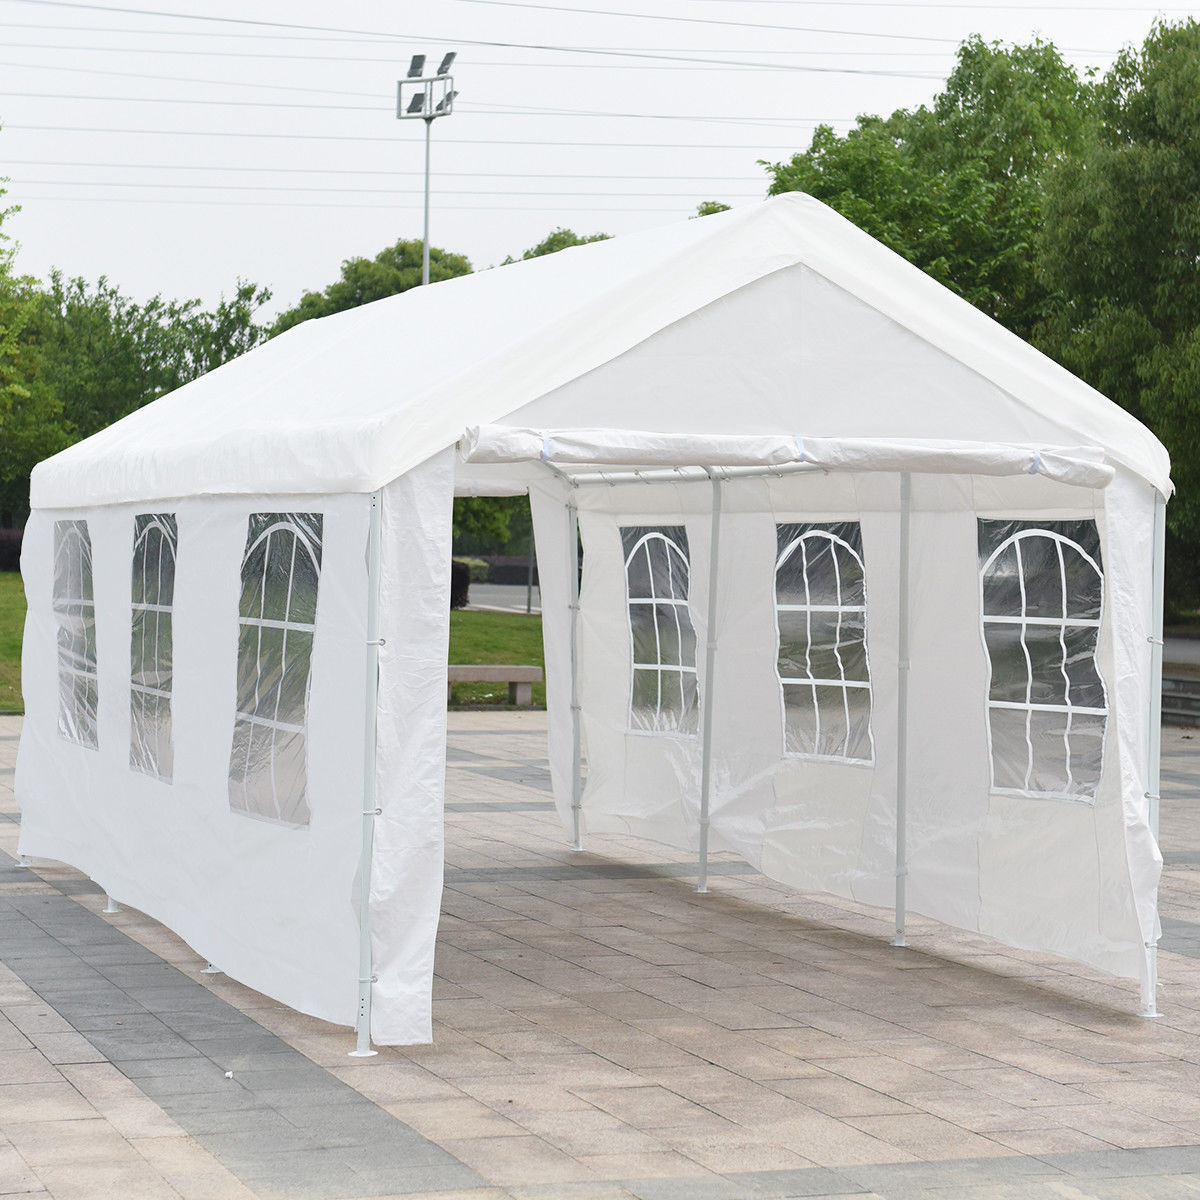 Gymax 10' x 20' Heavy Duty Party Wedding Tent Car Carport Canopy Garage Cover Shelter by Gymax